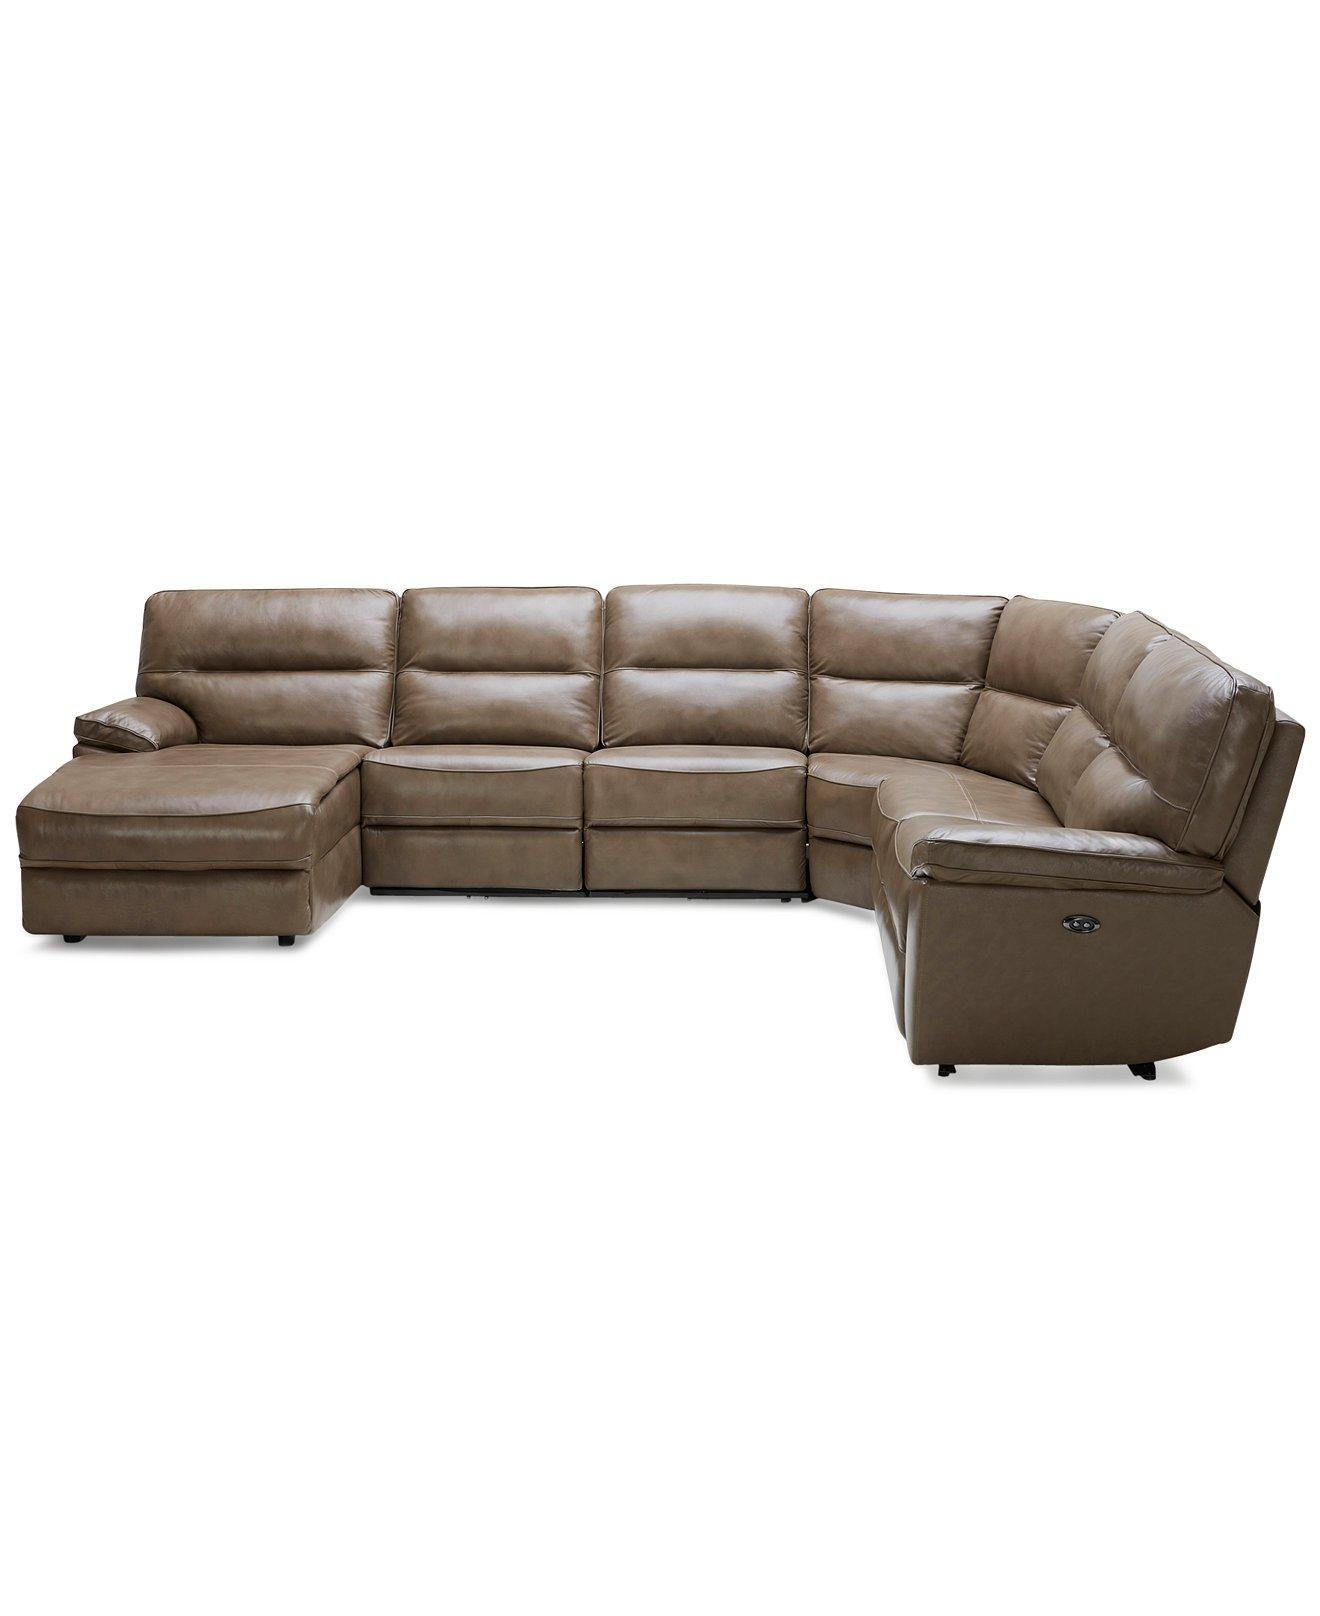 Sofas: Elegant Living Room Sofas Designmacys Sectional Sofa With Macys Leather Sectional Sofa (Image 15 of 20)